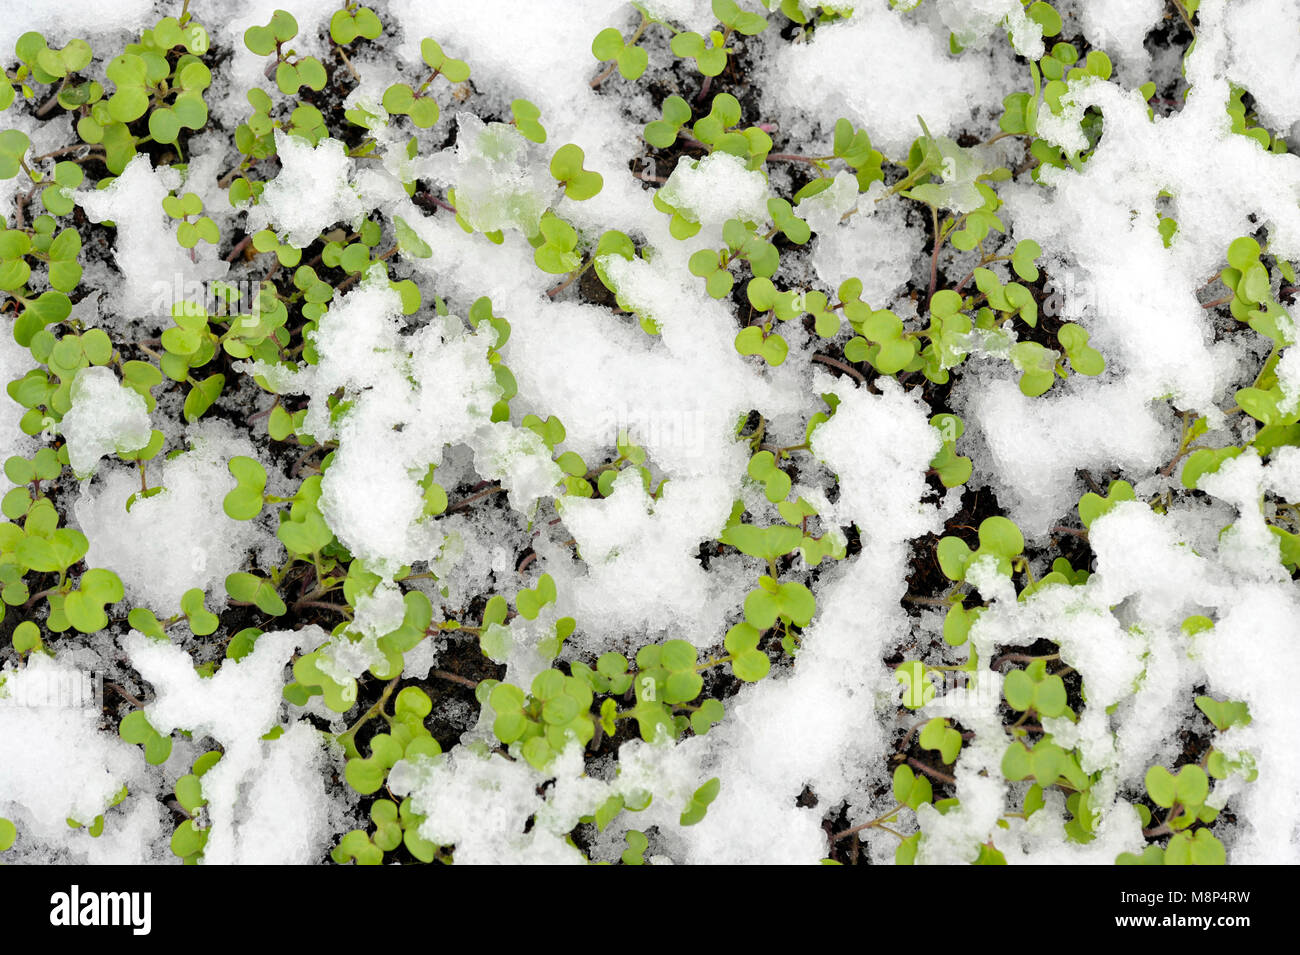 Mustard winter green manure cover crop plants growing with snow cover, Sinapis Alba, Brassica Alba or Brassica Hirta. - Stock Image